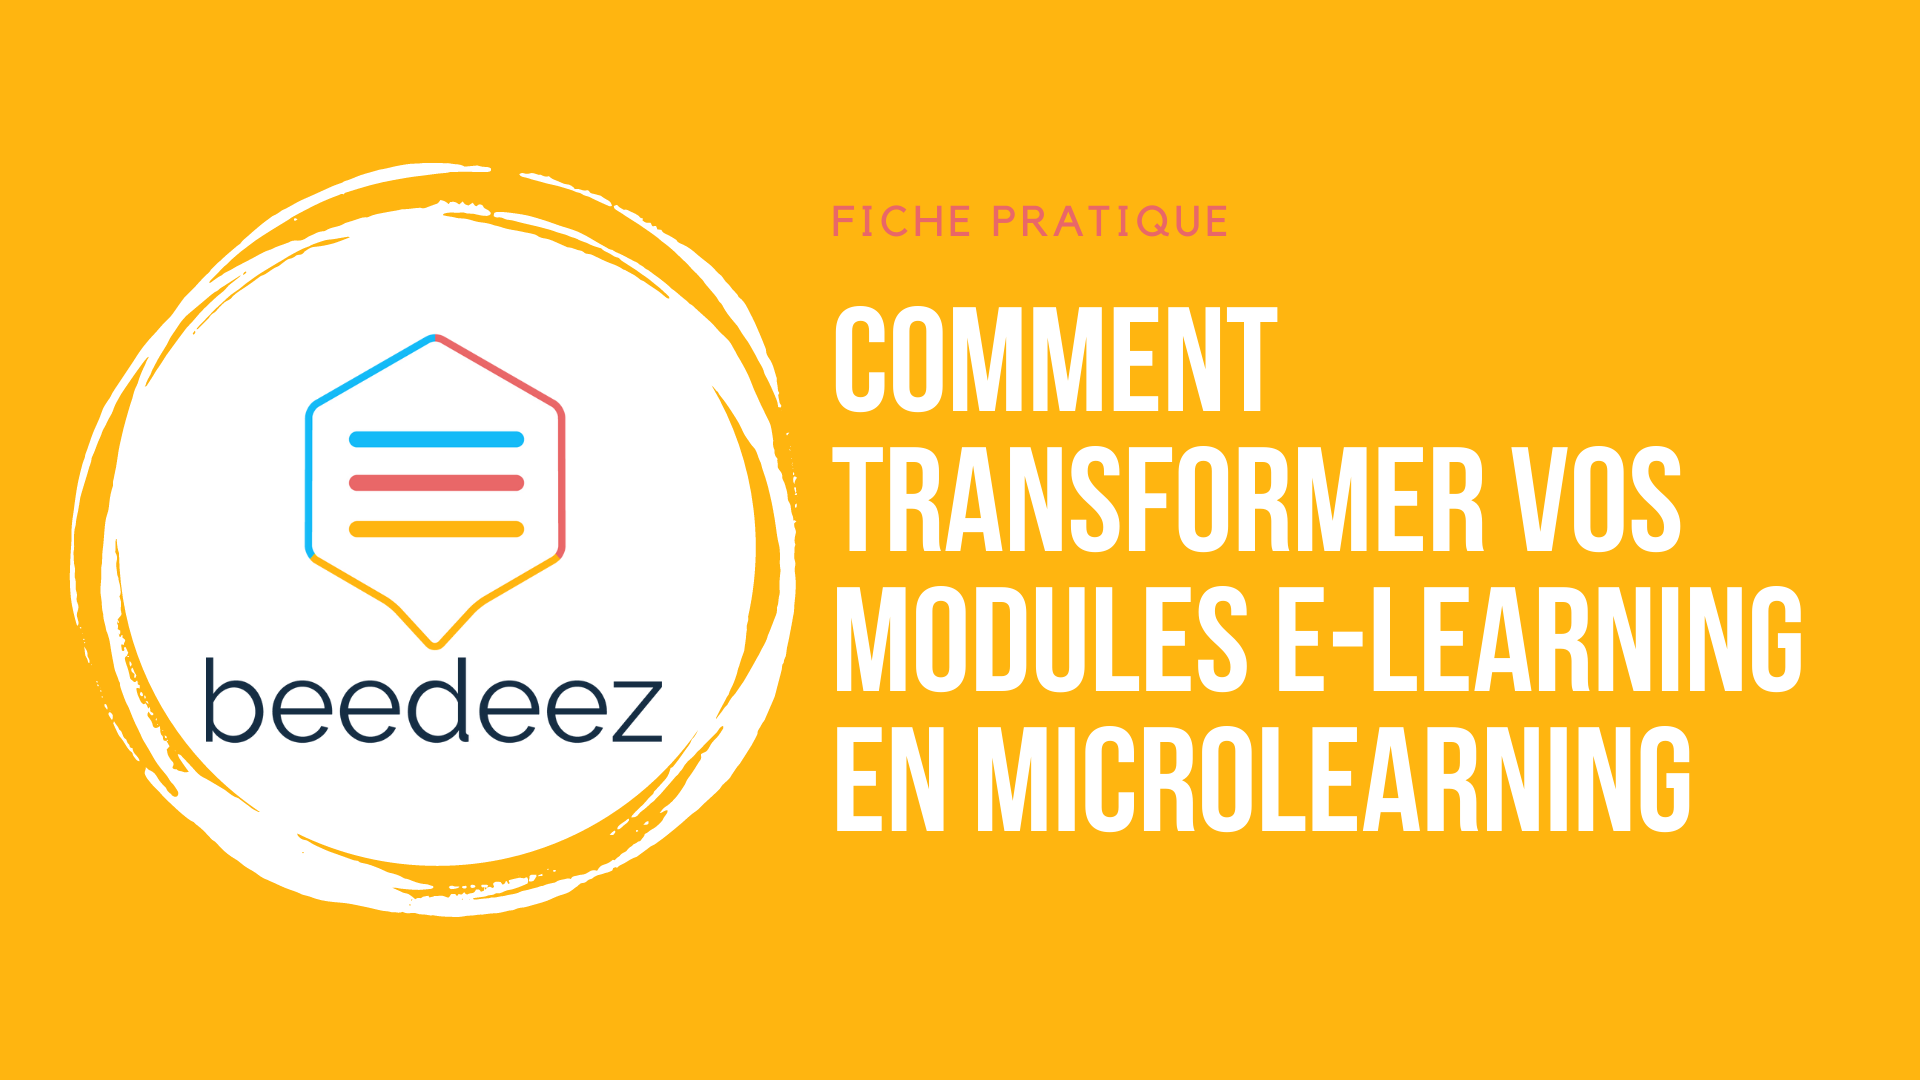 Comment transformer vos modules e-learning en microlearning